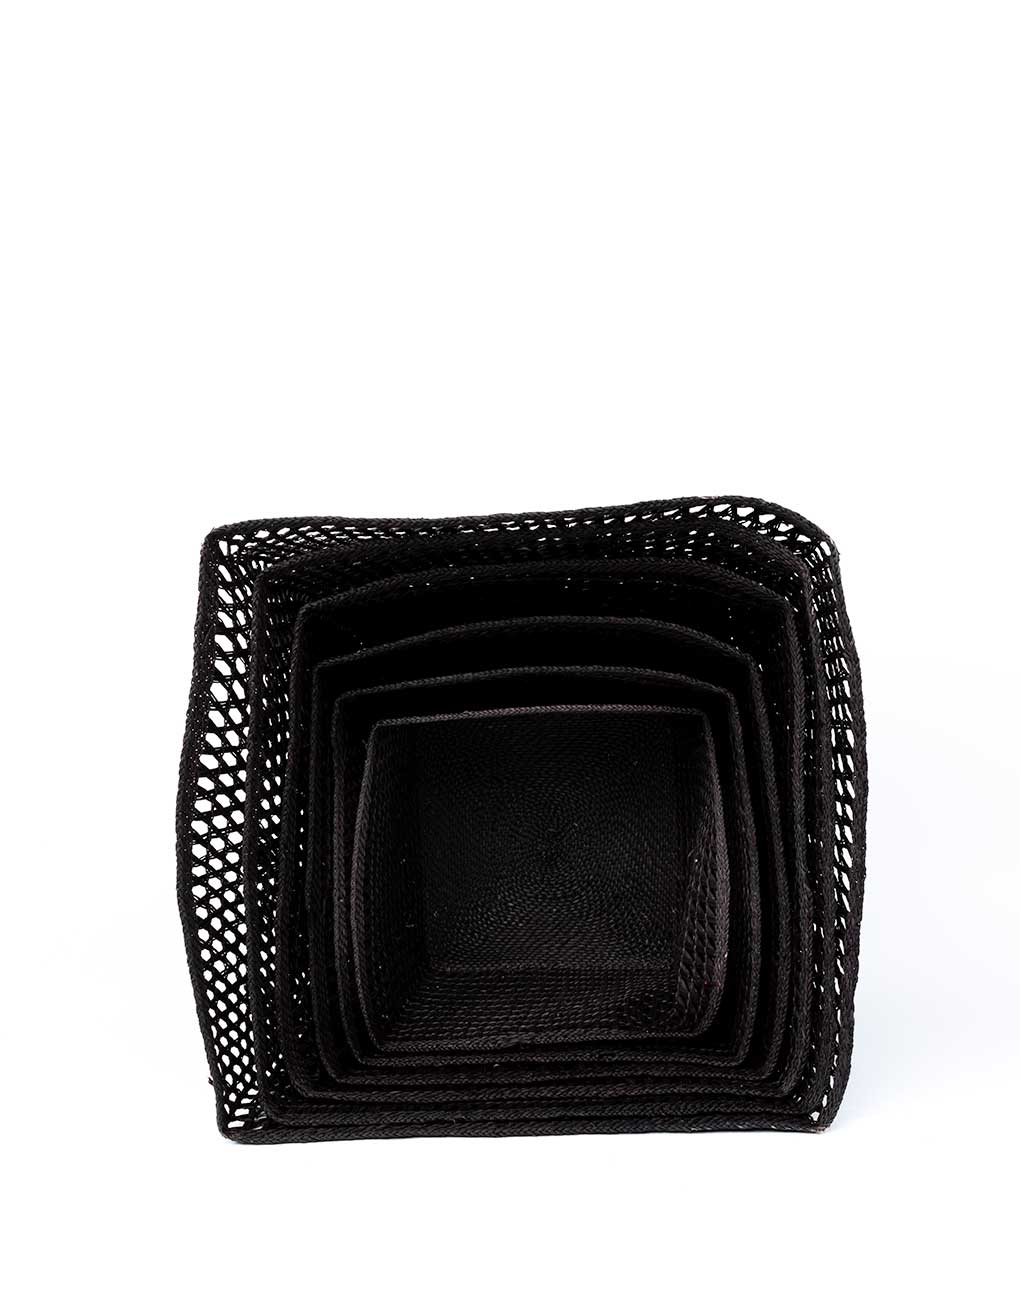 Nesting Square Open Weave Iringa Basket In Black Front View | The Little Market